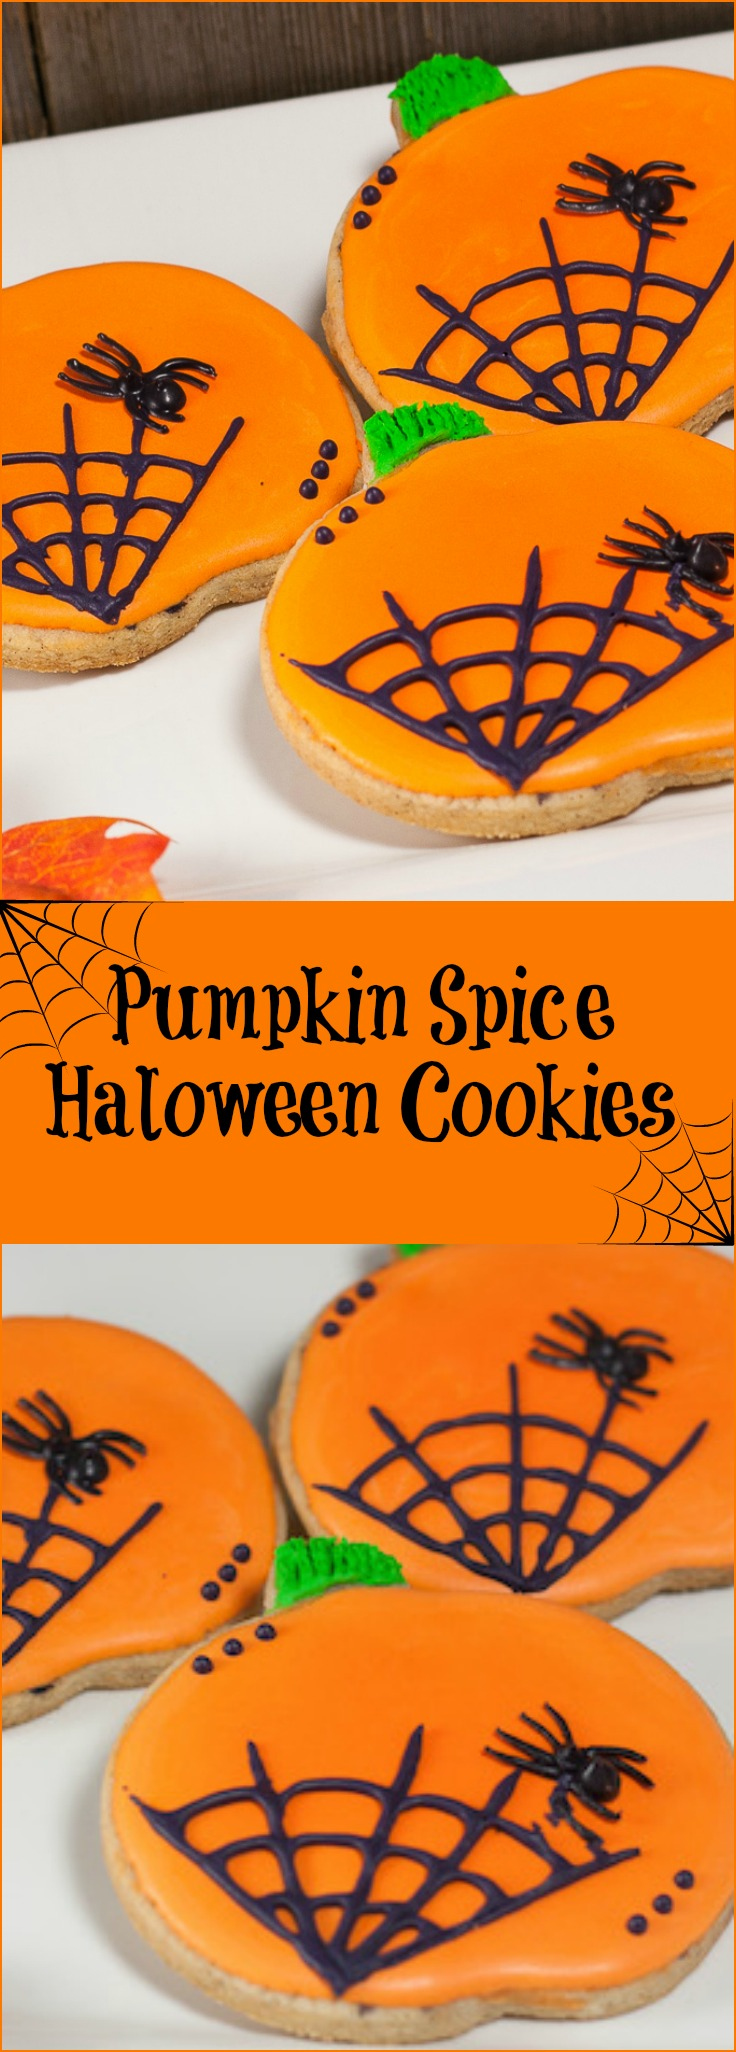 Festive pumpkin spice sugar cookies are a great homemade Halloween treat for spooky trick-or-treaters or Halloween party treat.